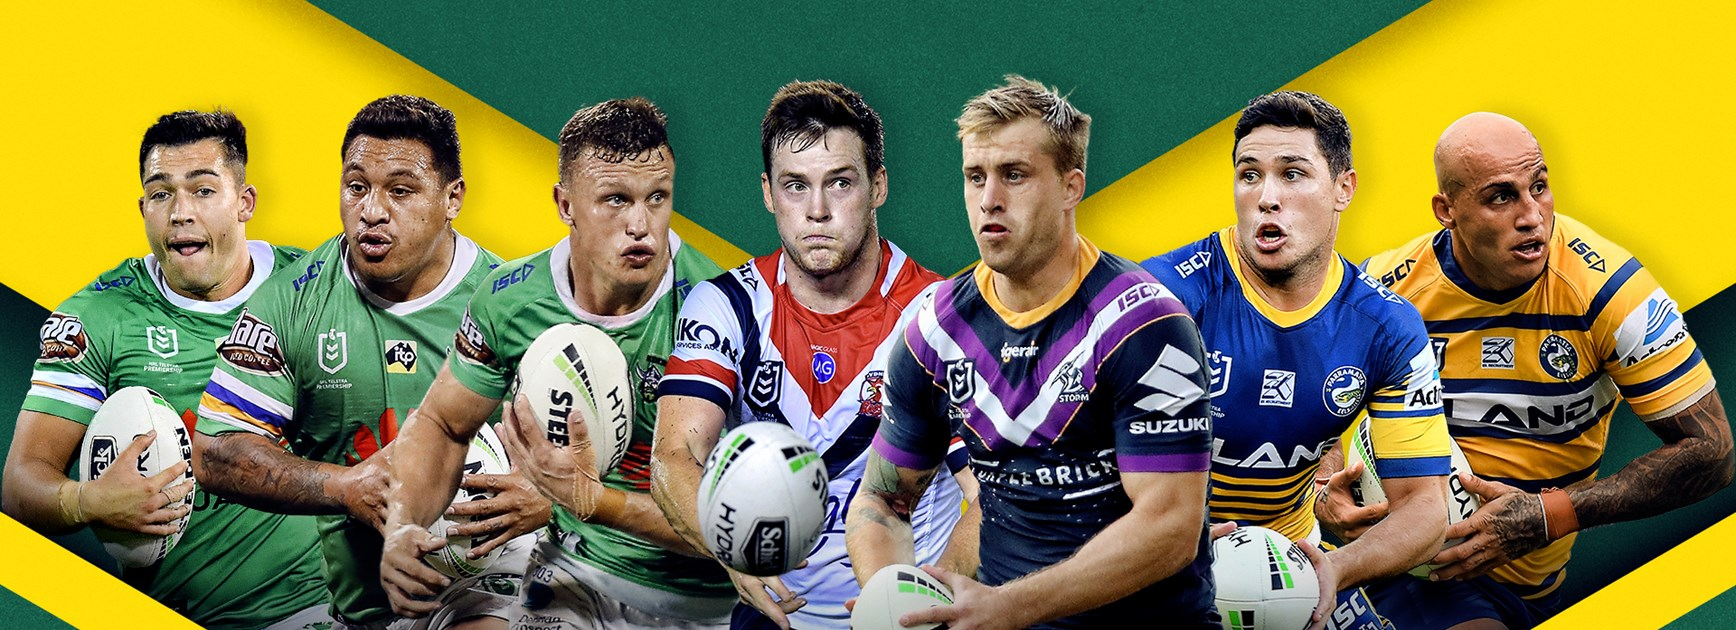 Keary puts pressure on Munster as several players surge into Kangaroos frame